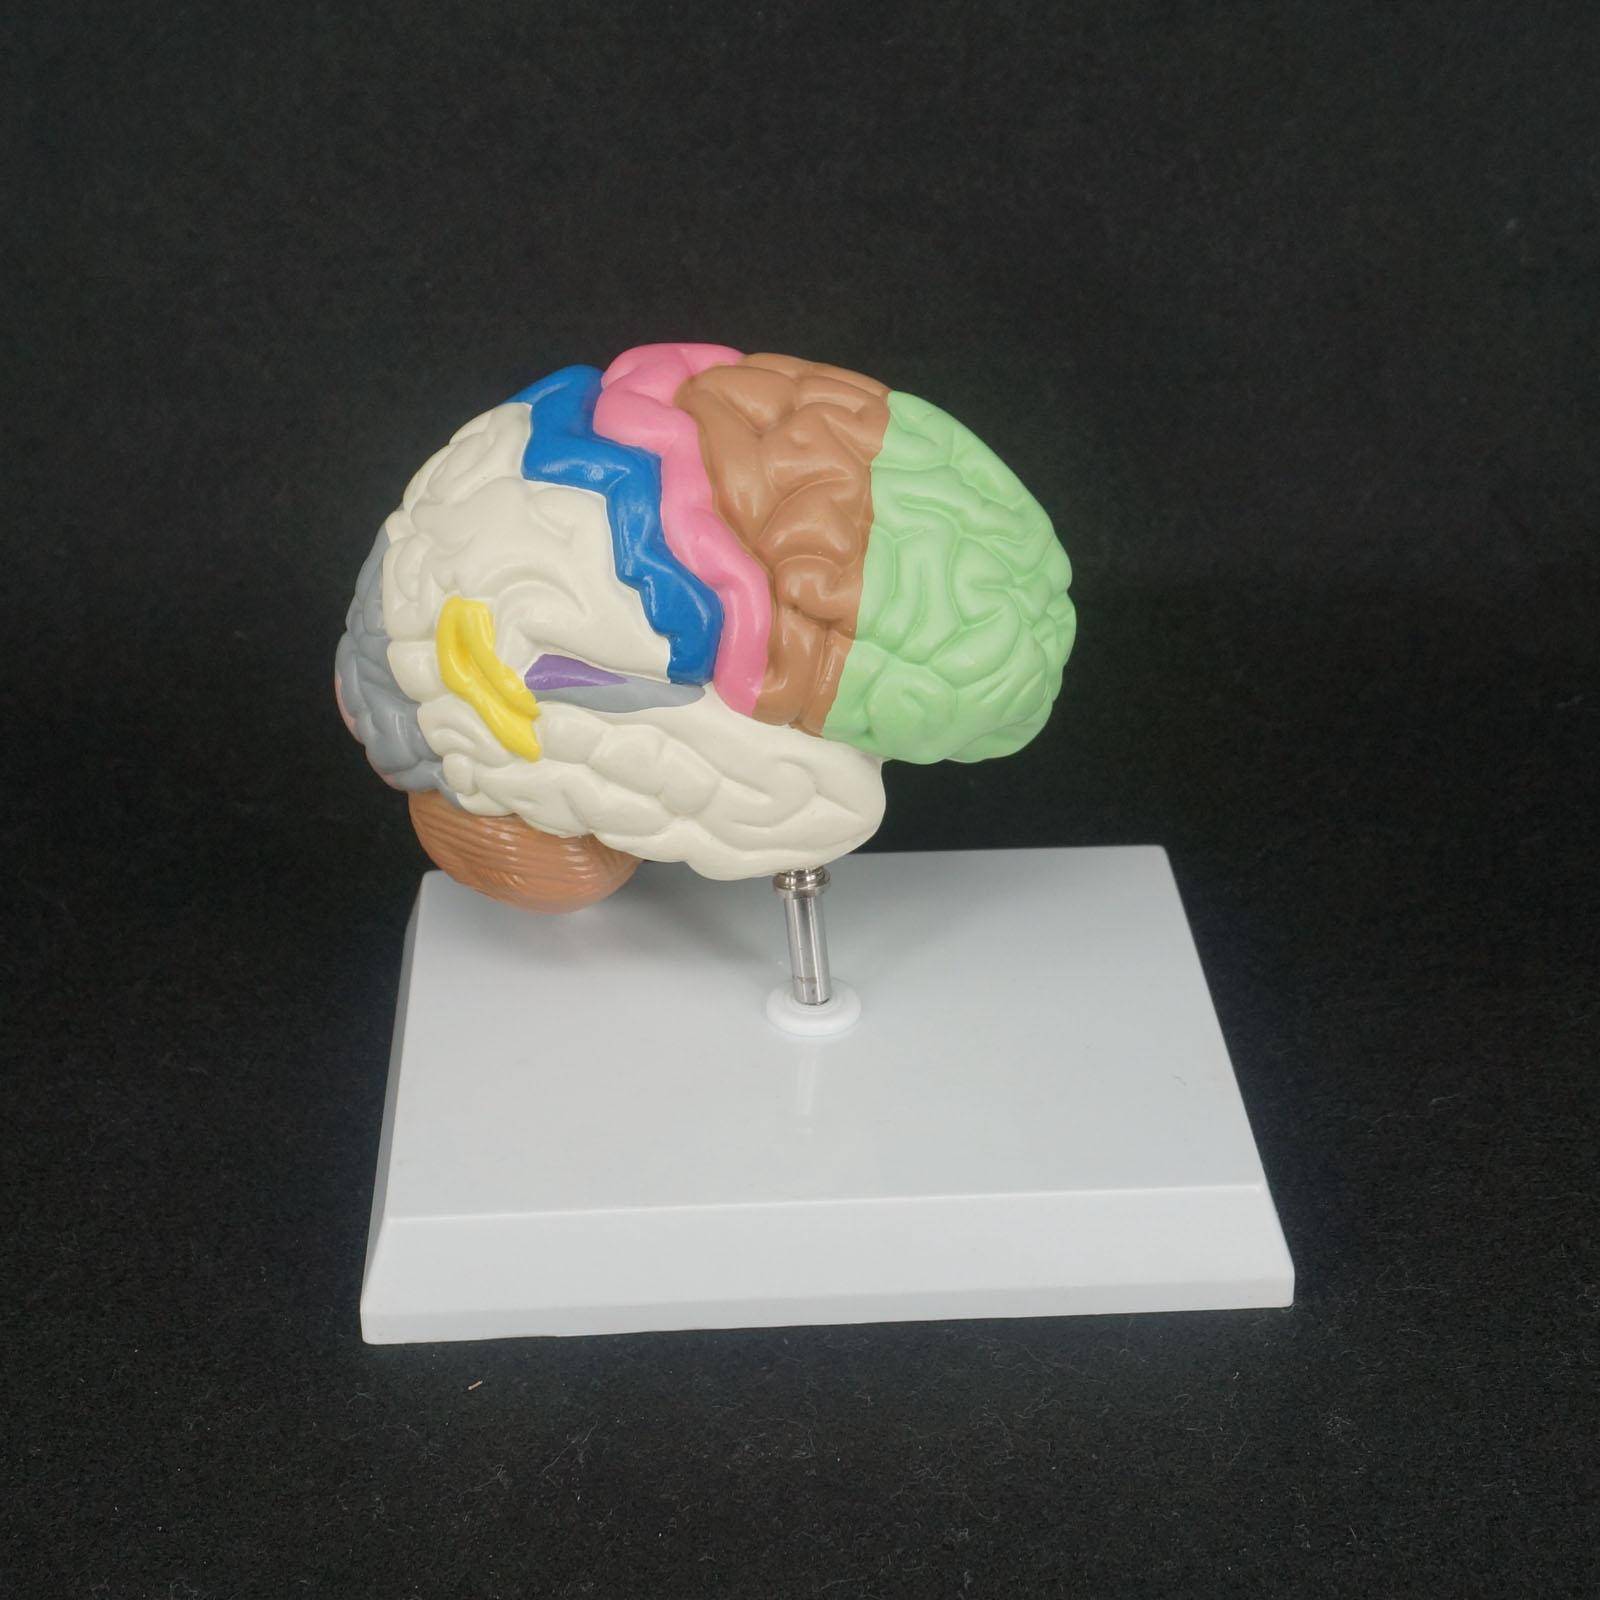 Color Human Brain Domain Anatomy Anatomical Model Right Brain Medical Function Educational Supplies 4d anatomical human brain model anatomy medical teaching tool toy statues sculptures medical school use 7 2 6 10cm